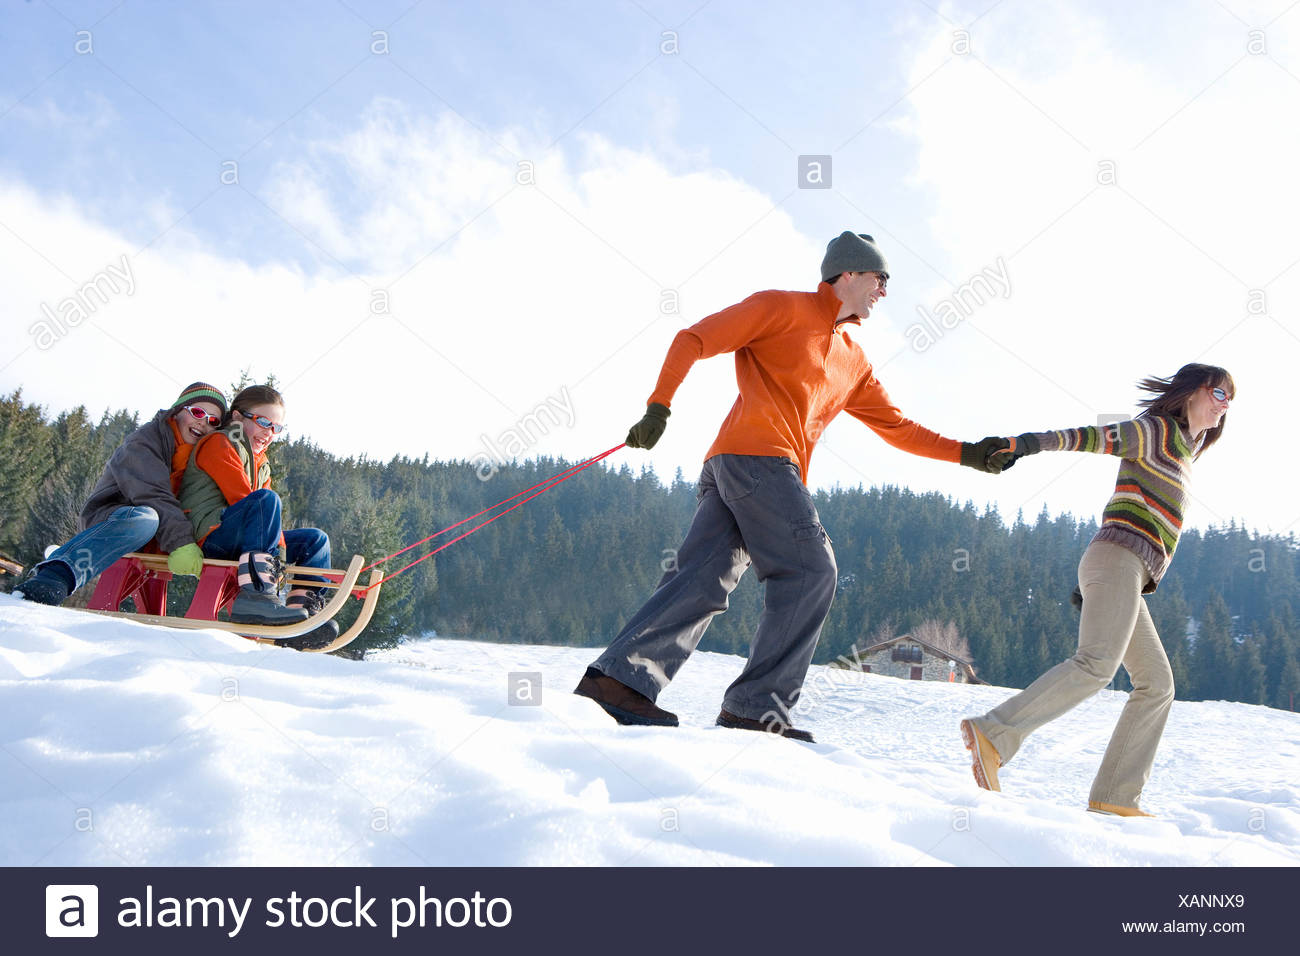 Couple pulling son and daughter  on sled in snow, smiling, side view - Stock Image